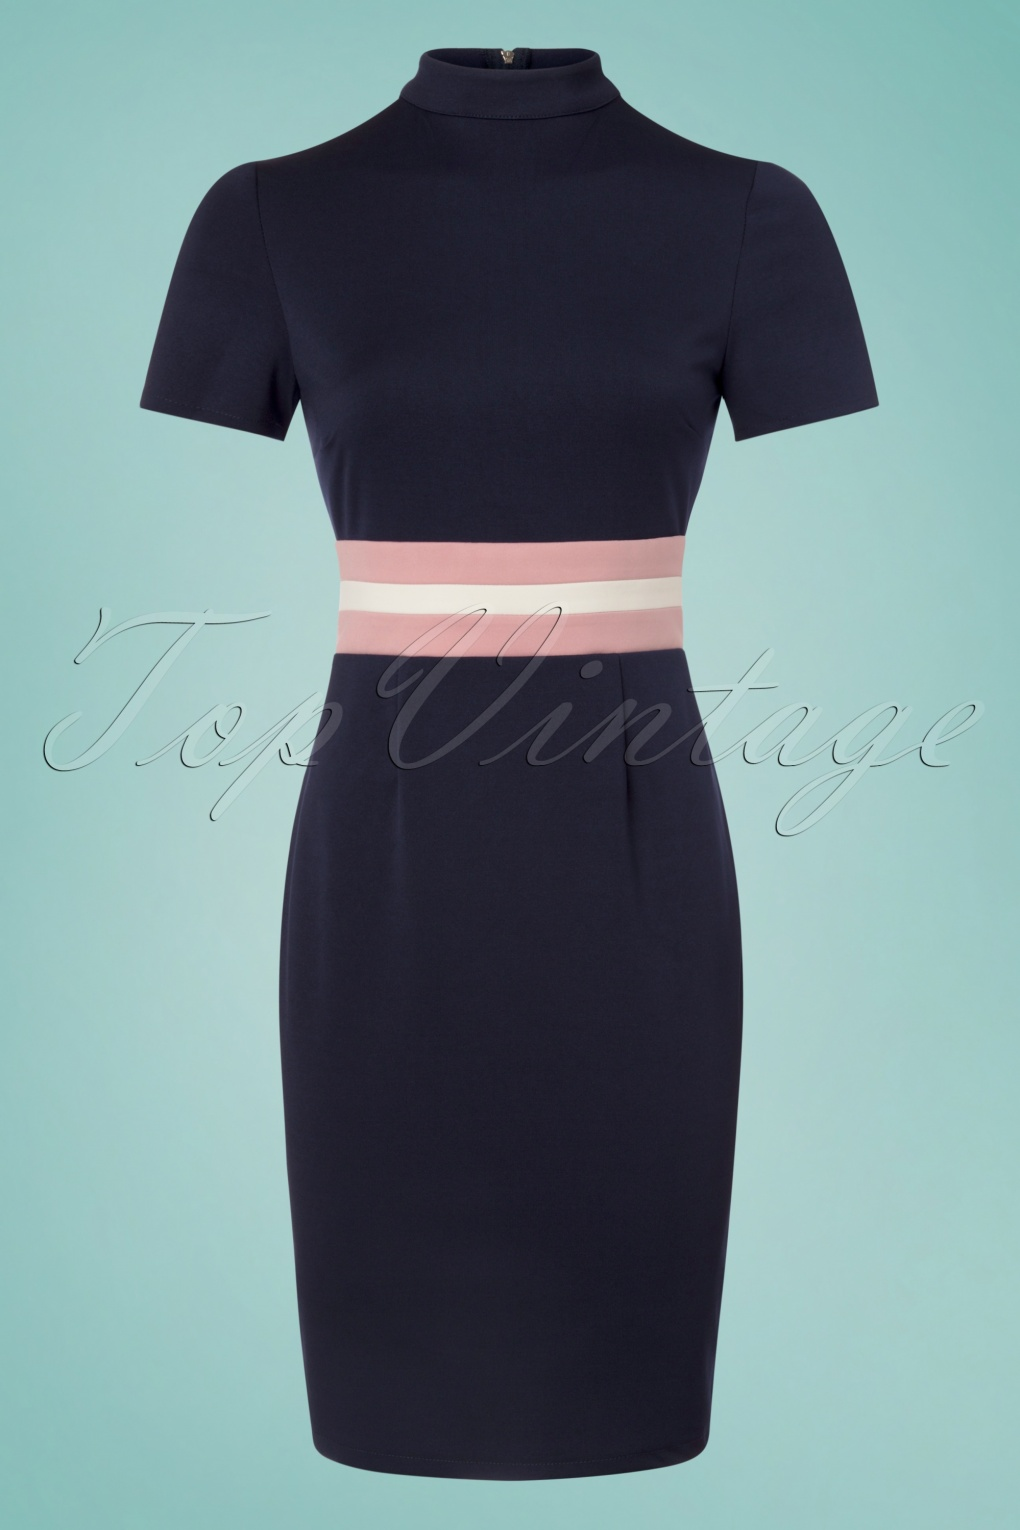 1960s Dresses – A Rainbow of 50 Dresses (Pictures) 60s Mink Waist Pencil Dress in Navy £48.10 AT vintagedancer.com